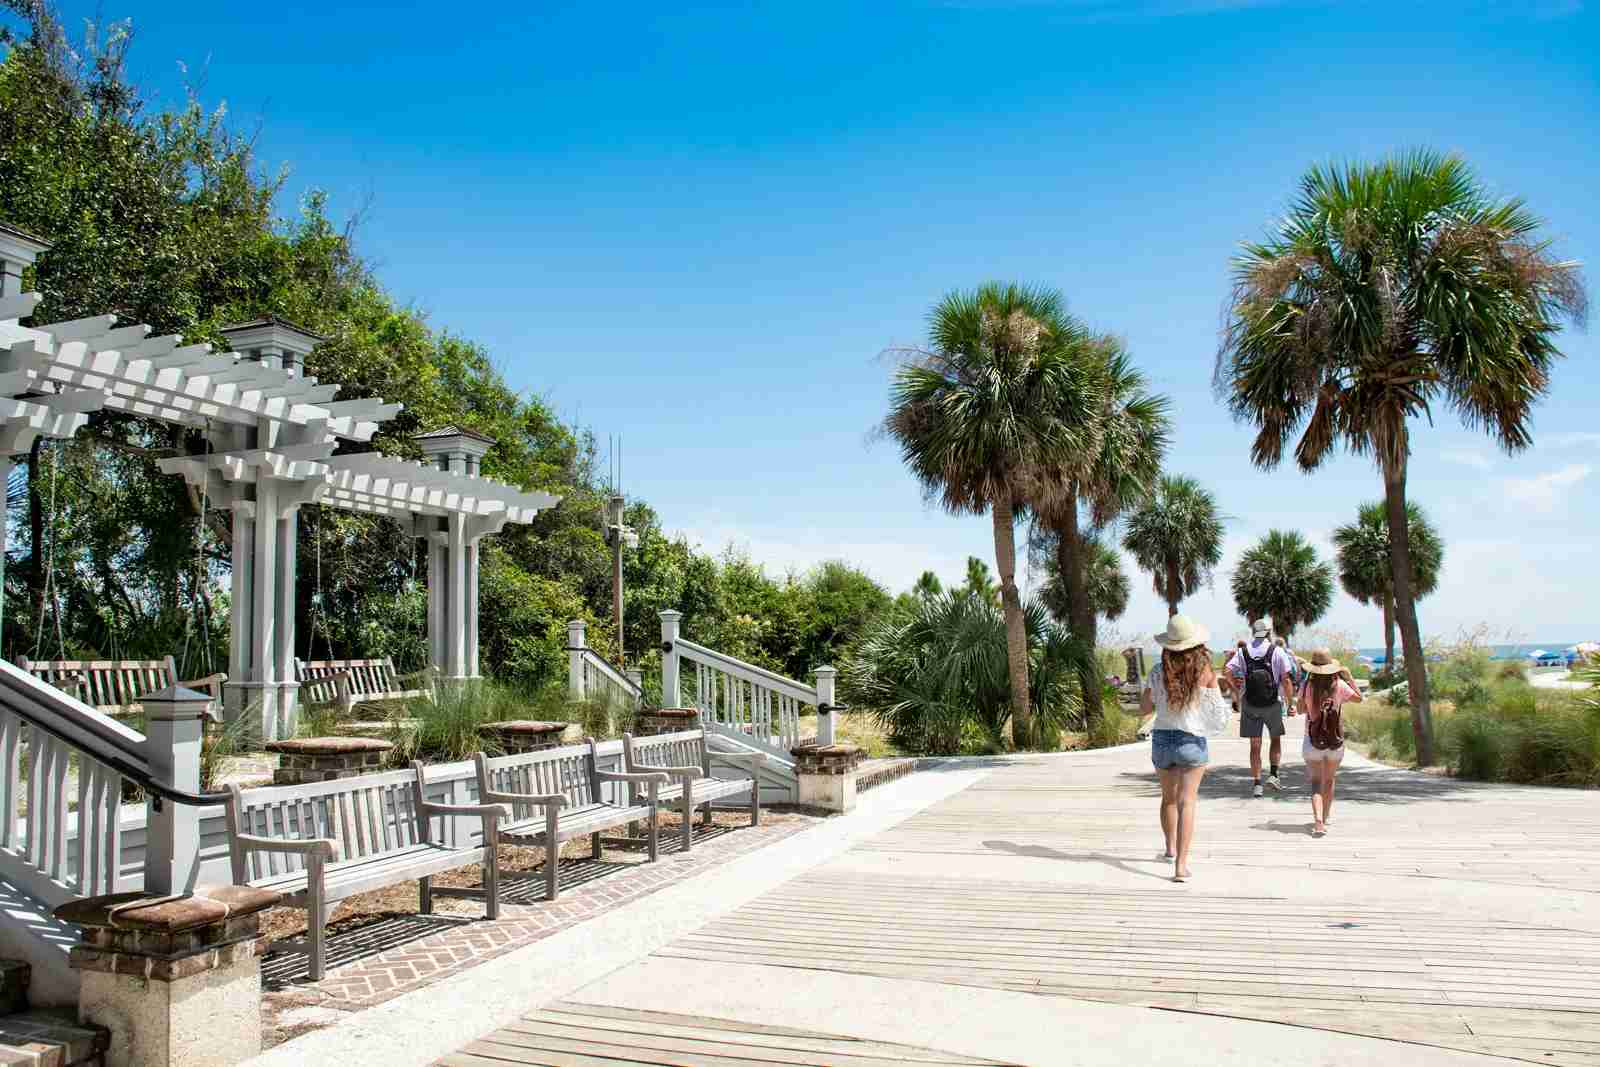 Coligny Beach Park on Hilton Head Island. (Photo via Getty Images)